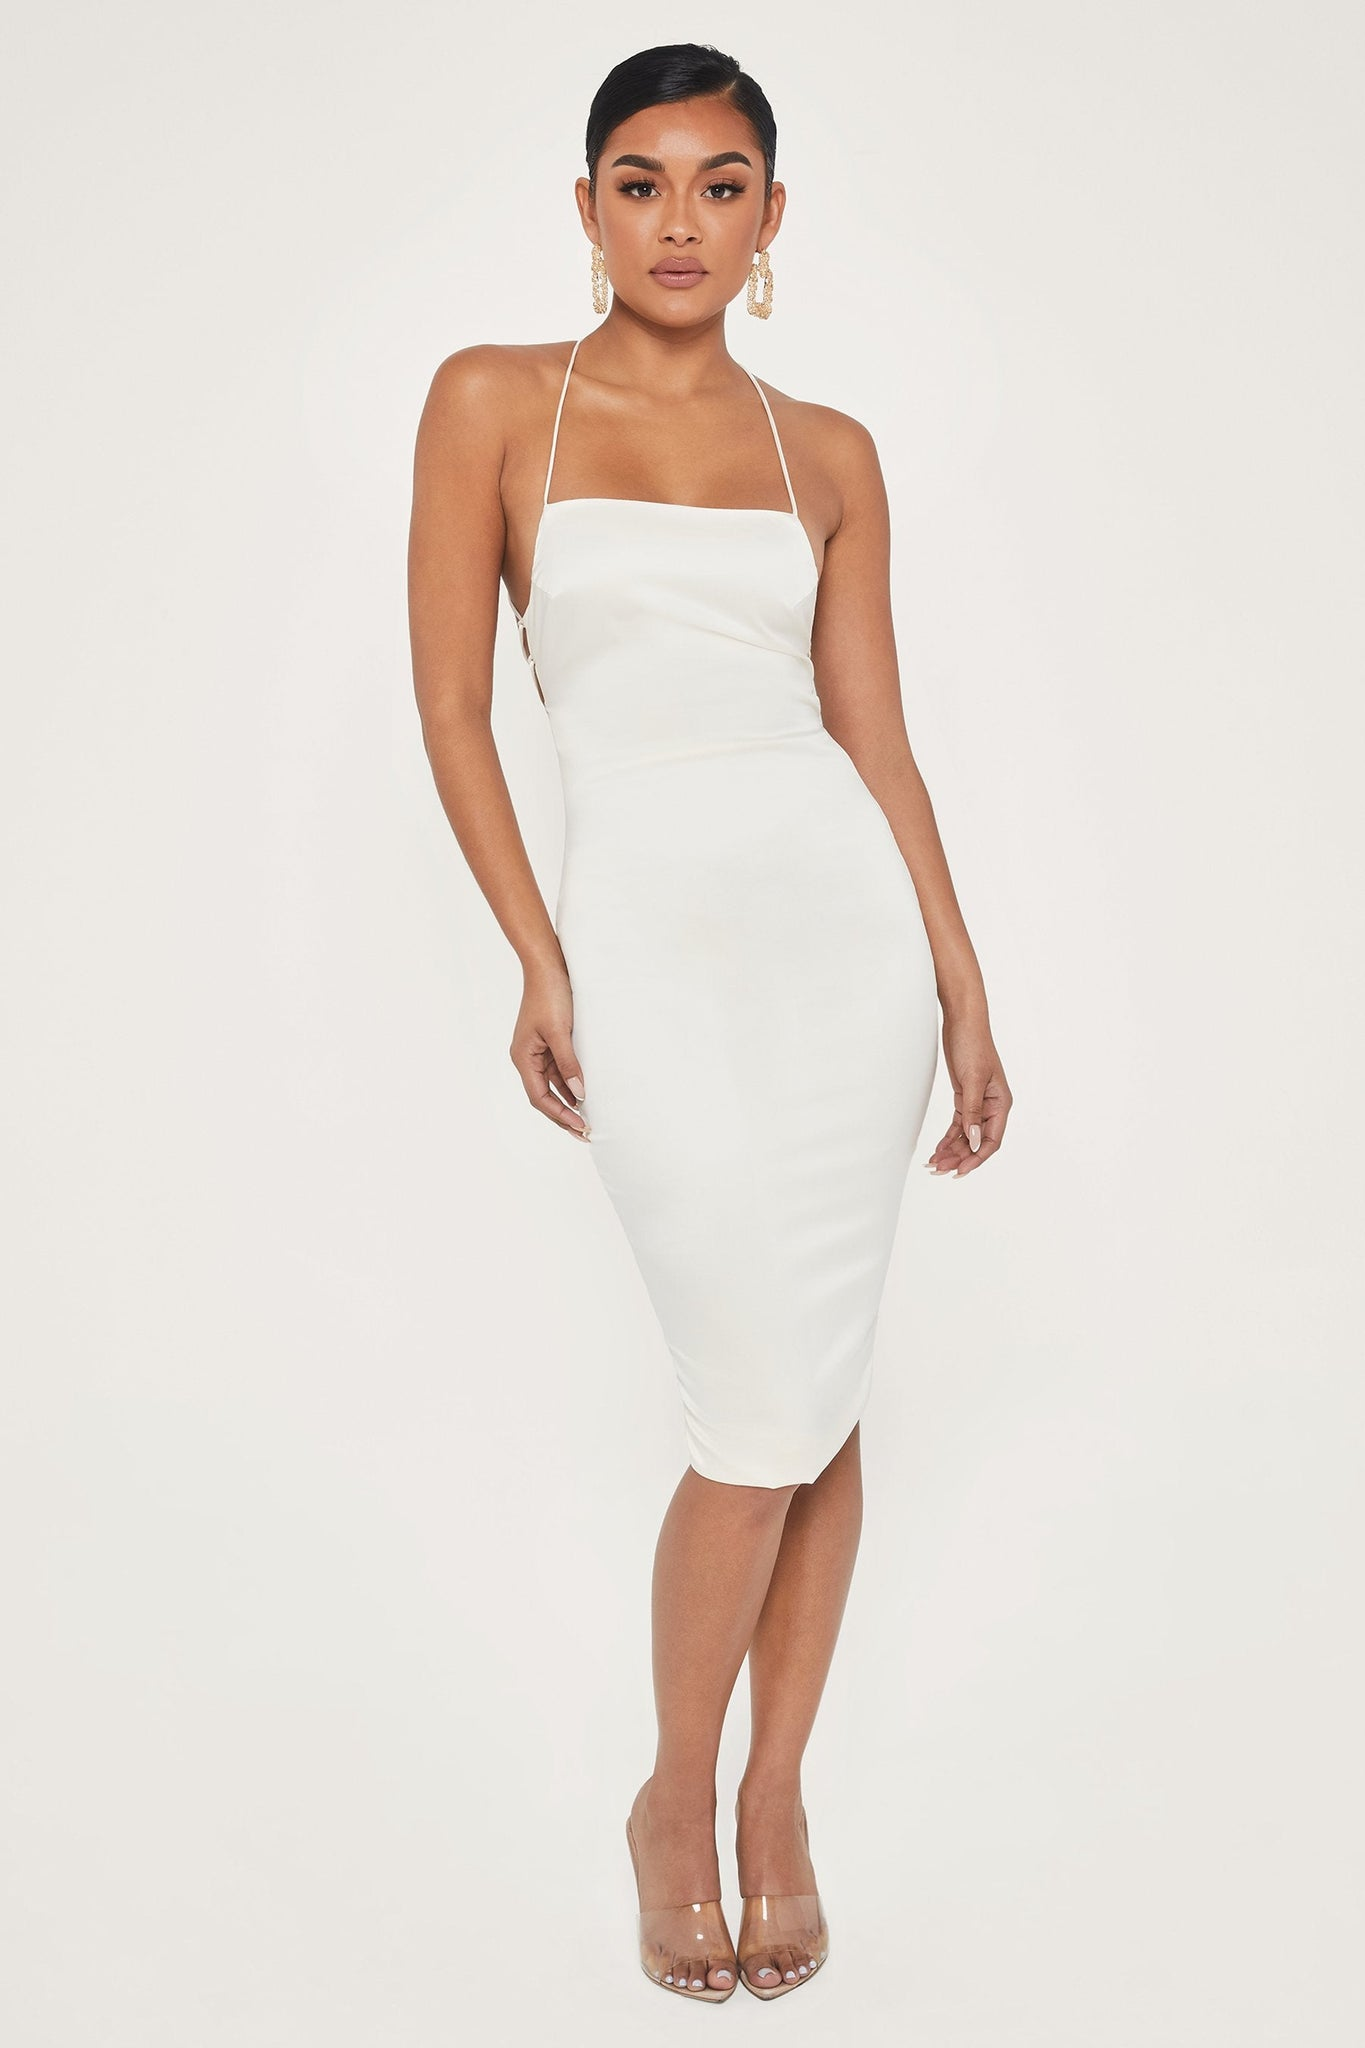 Bebe Thin Strap Lace Up Midi Dress - Ivory - MESHKI